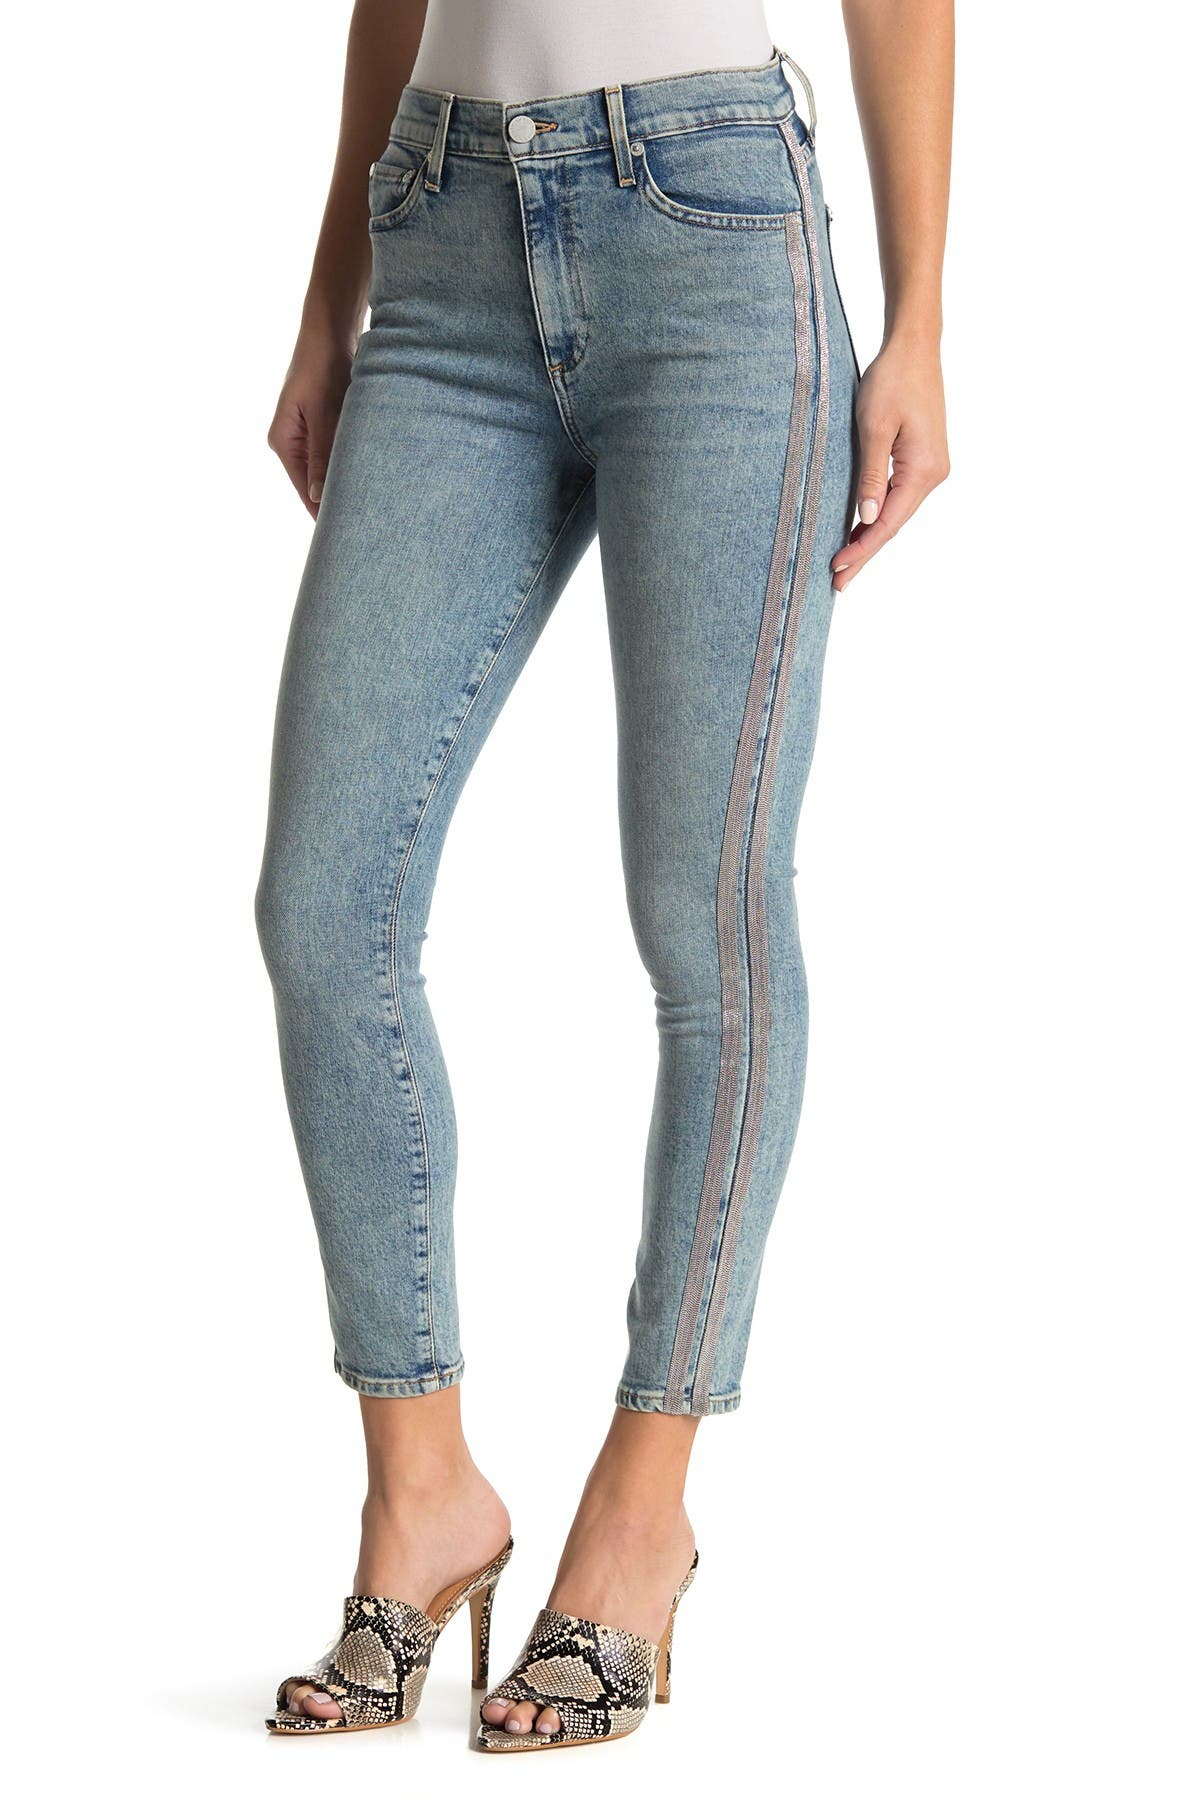 Image of alice + olivia Good High Rise Ankle Skinny Jeans